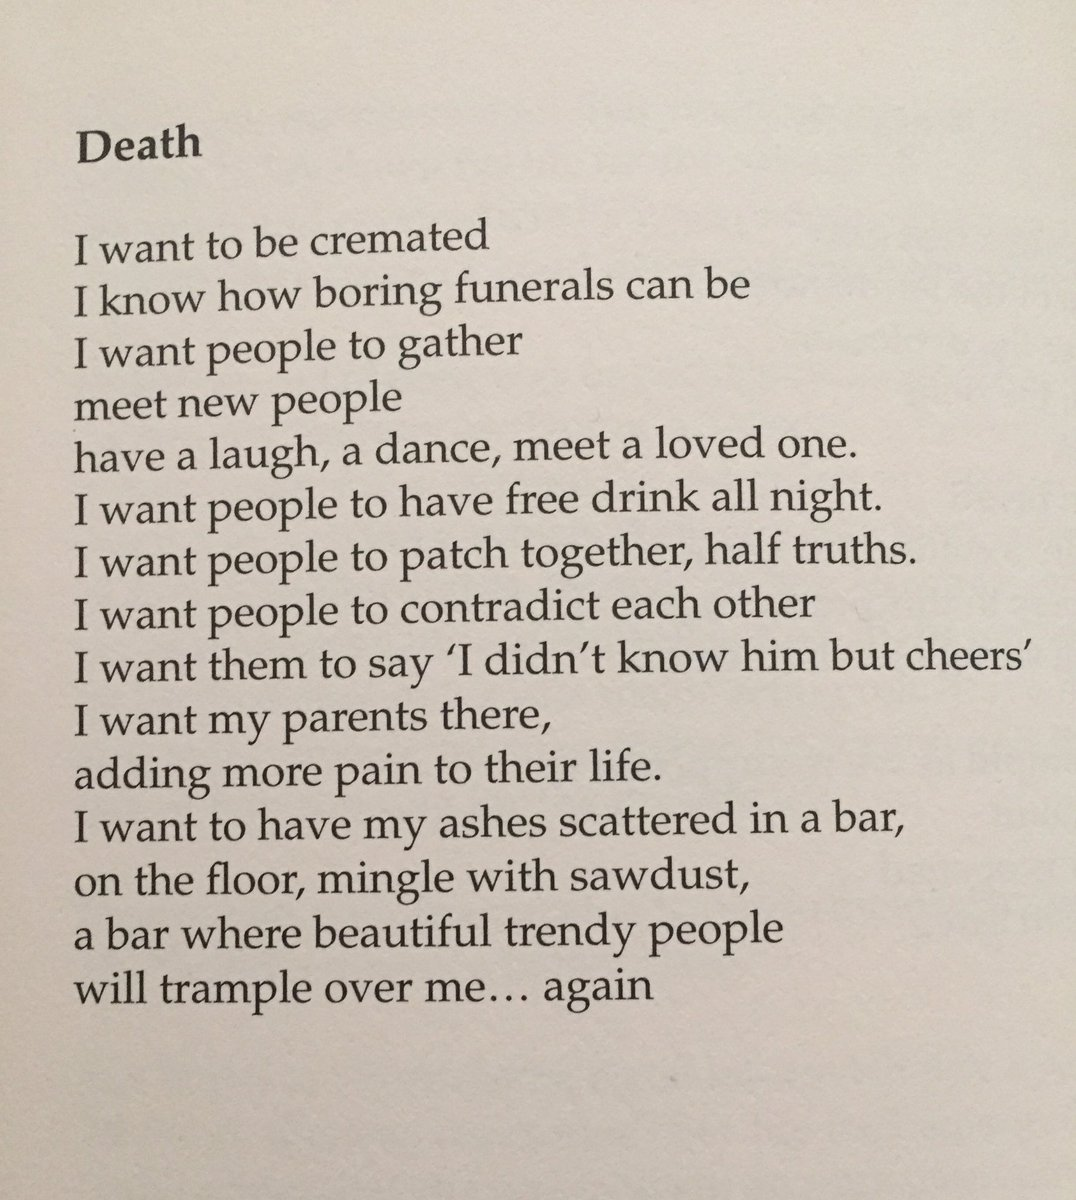 A poem by #seanhughes #RIPSeanHughes https://t.co/3WbyOr6BtM